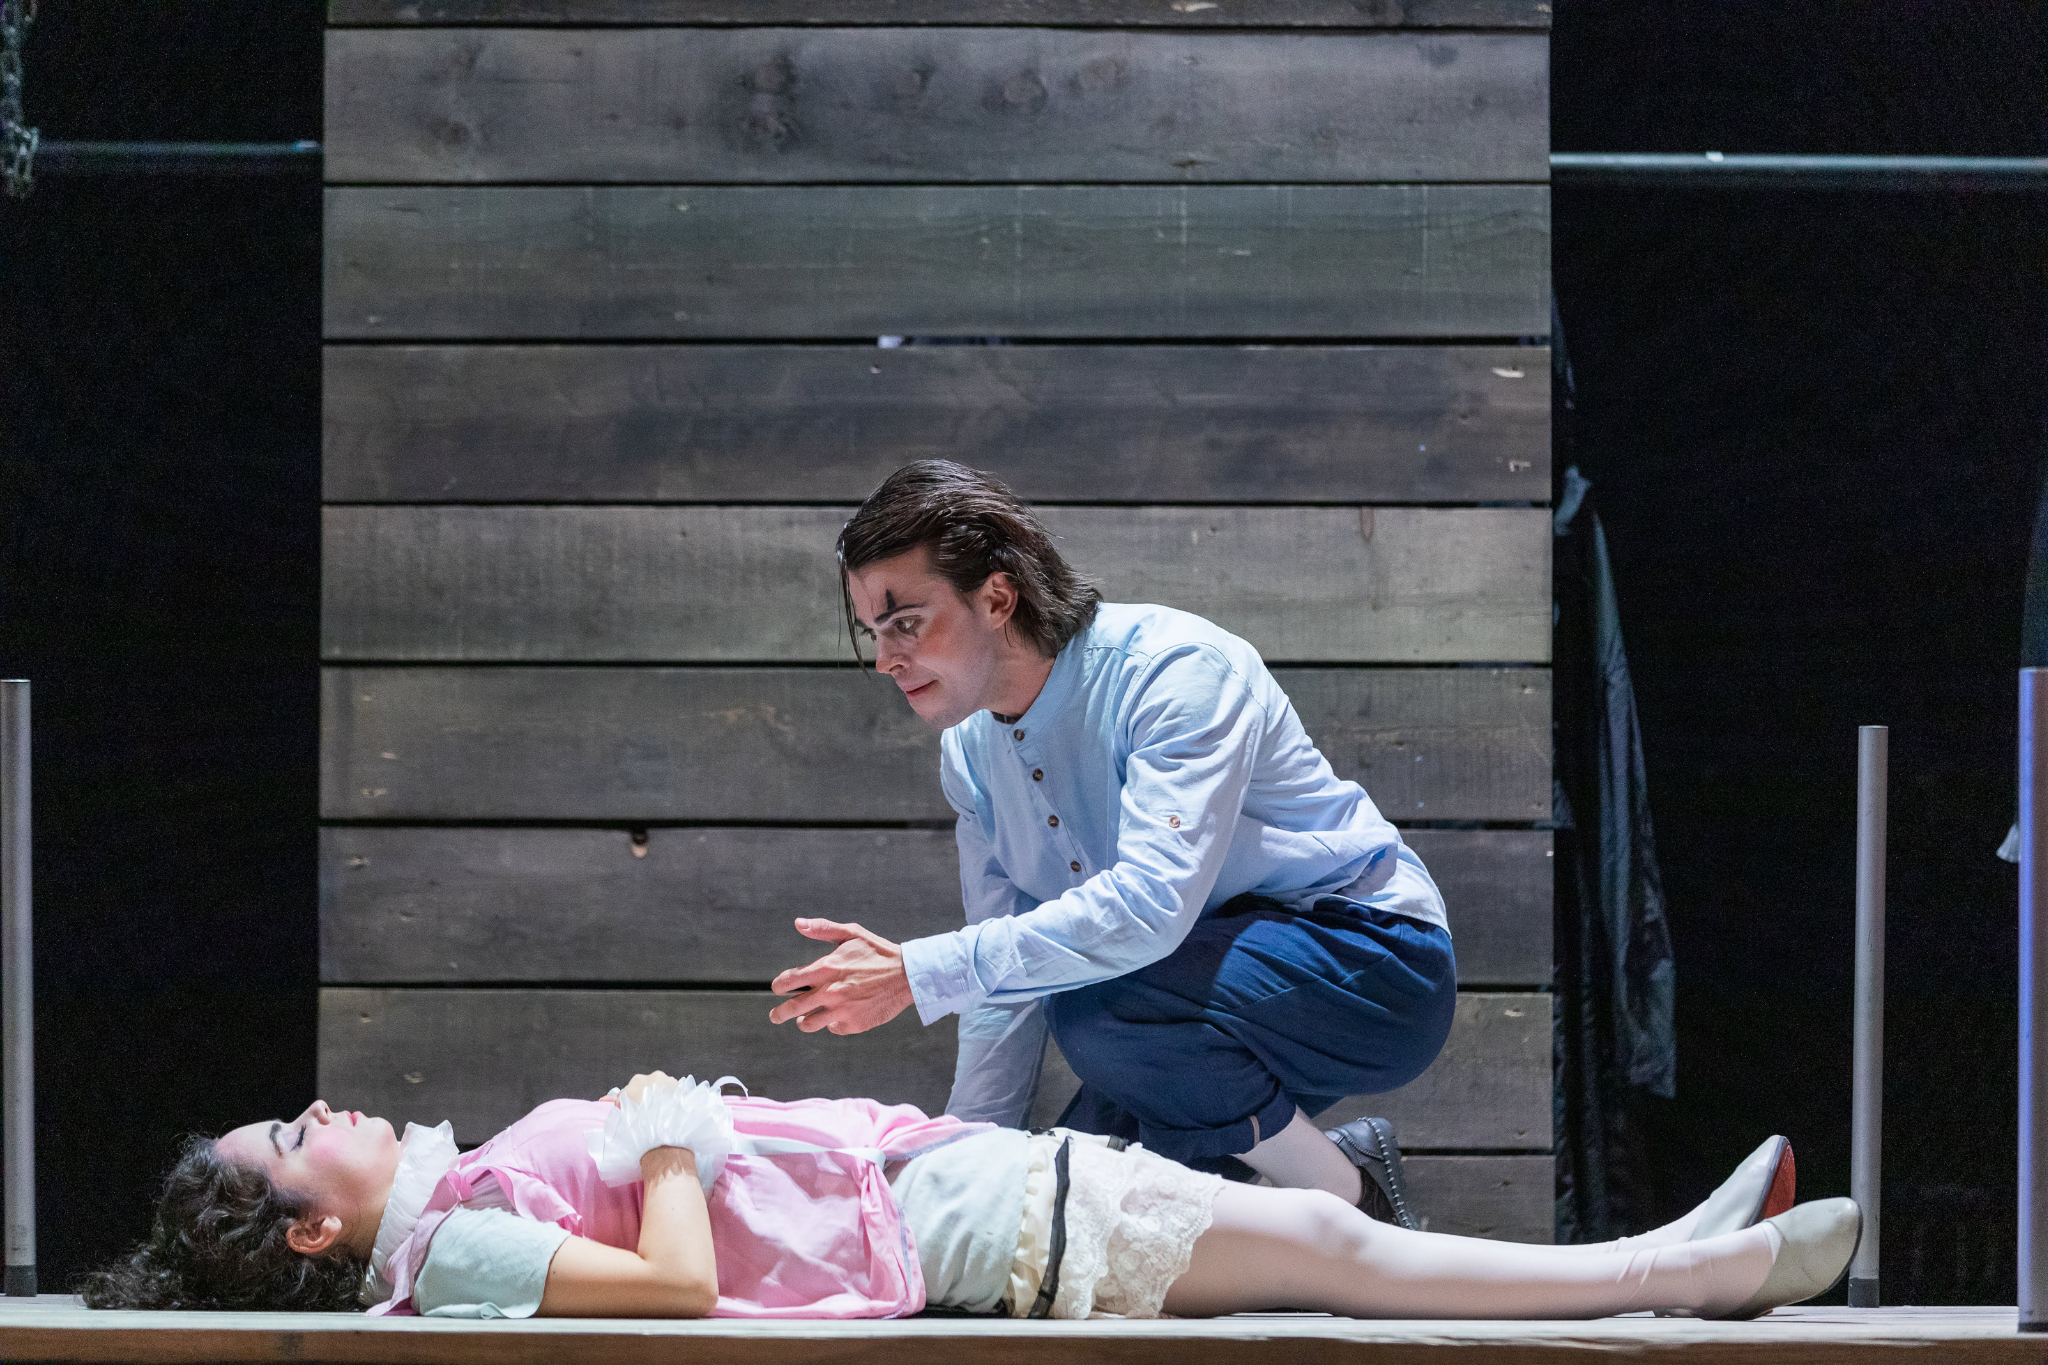 Erika Anclade (Juliet) and Greg Hermann (Romeo) in Romeo & Juliet, CSC2, 2019-Photo by Nile Hawver